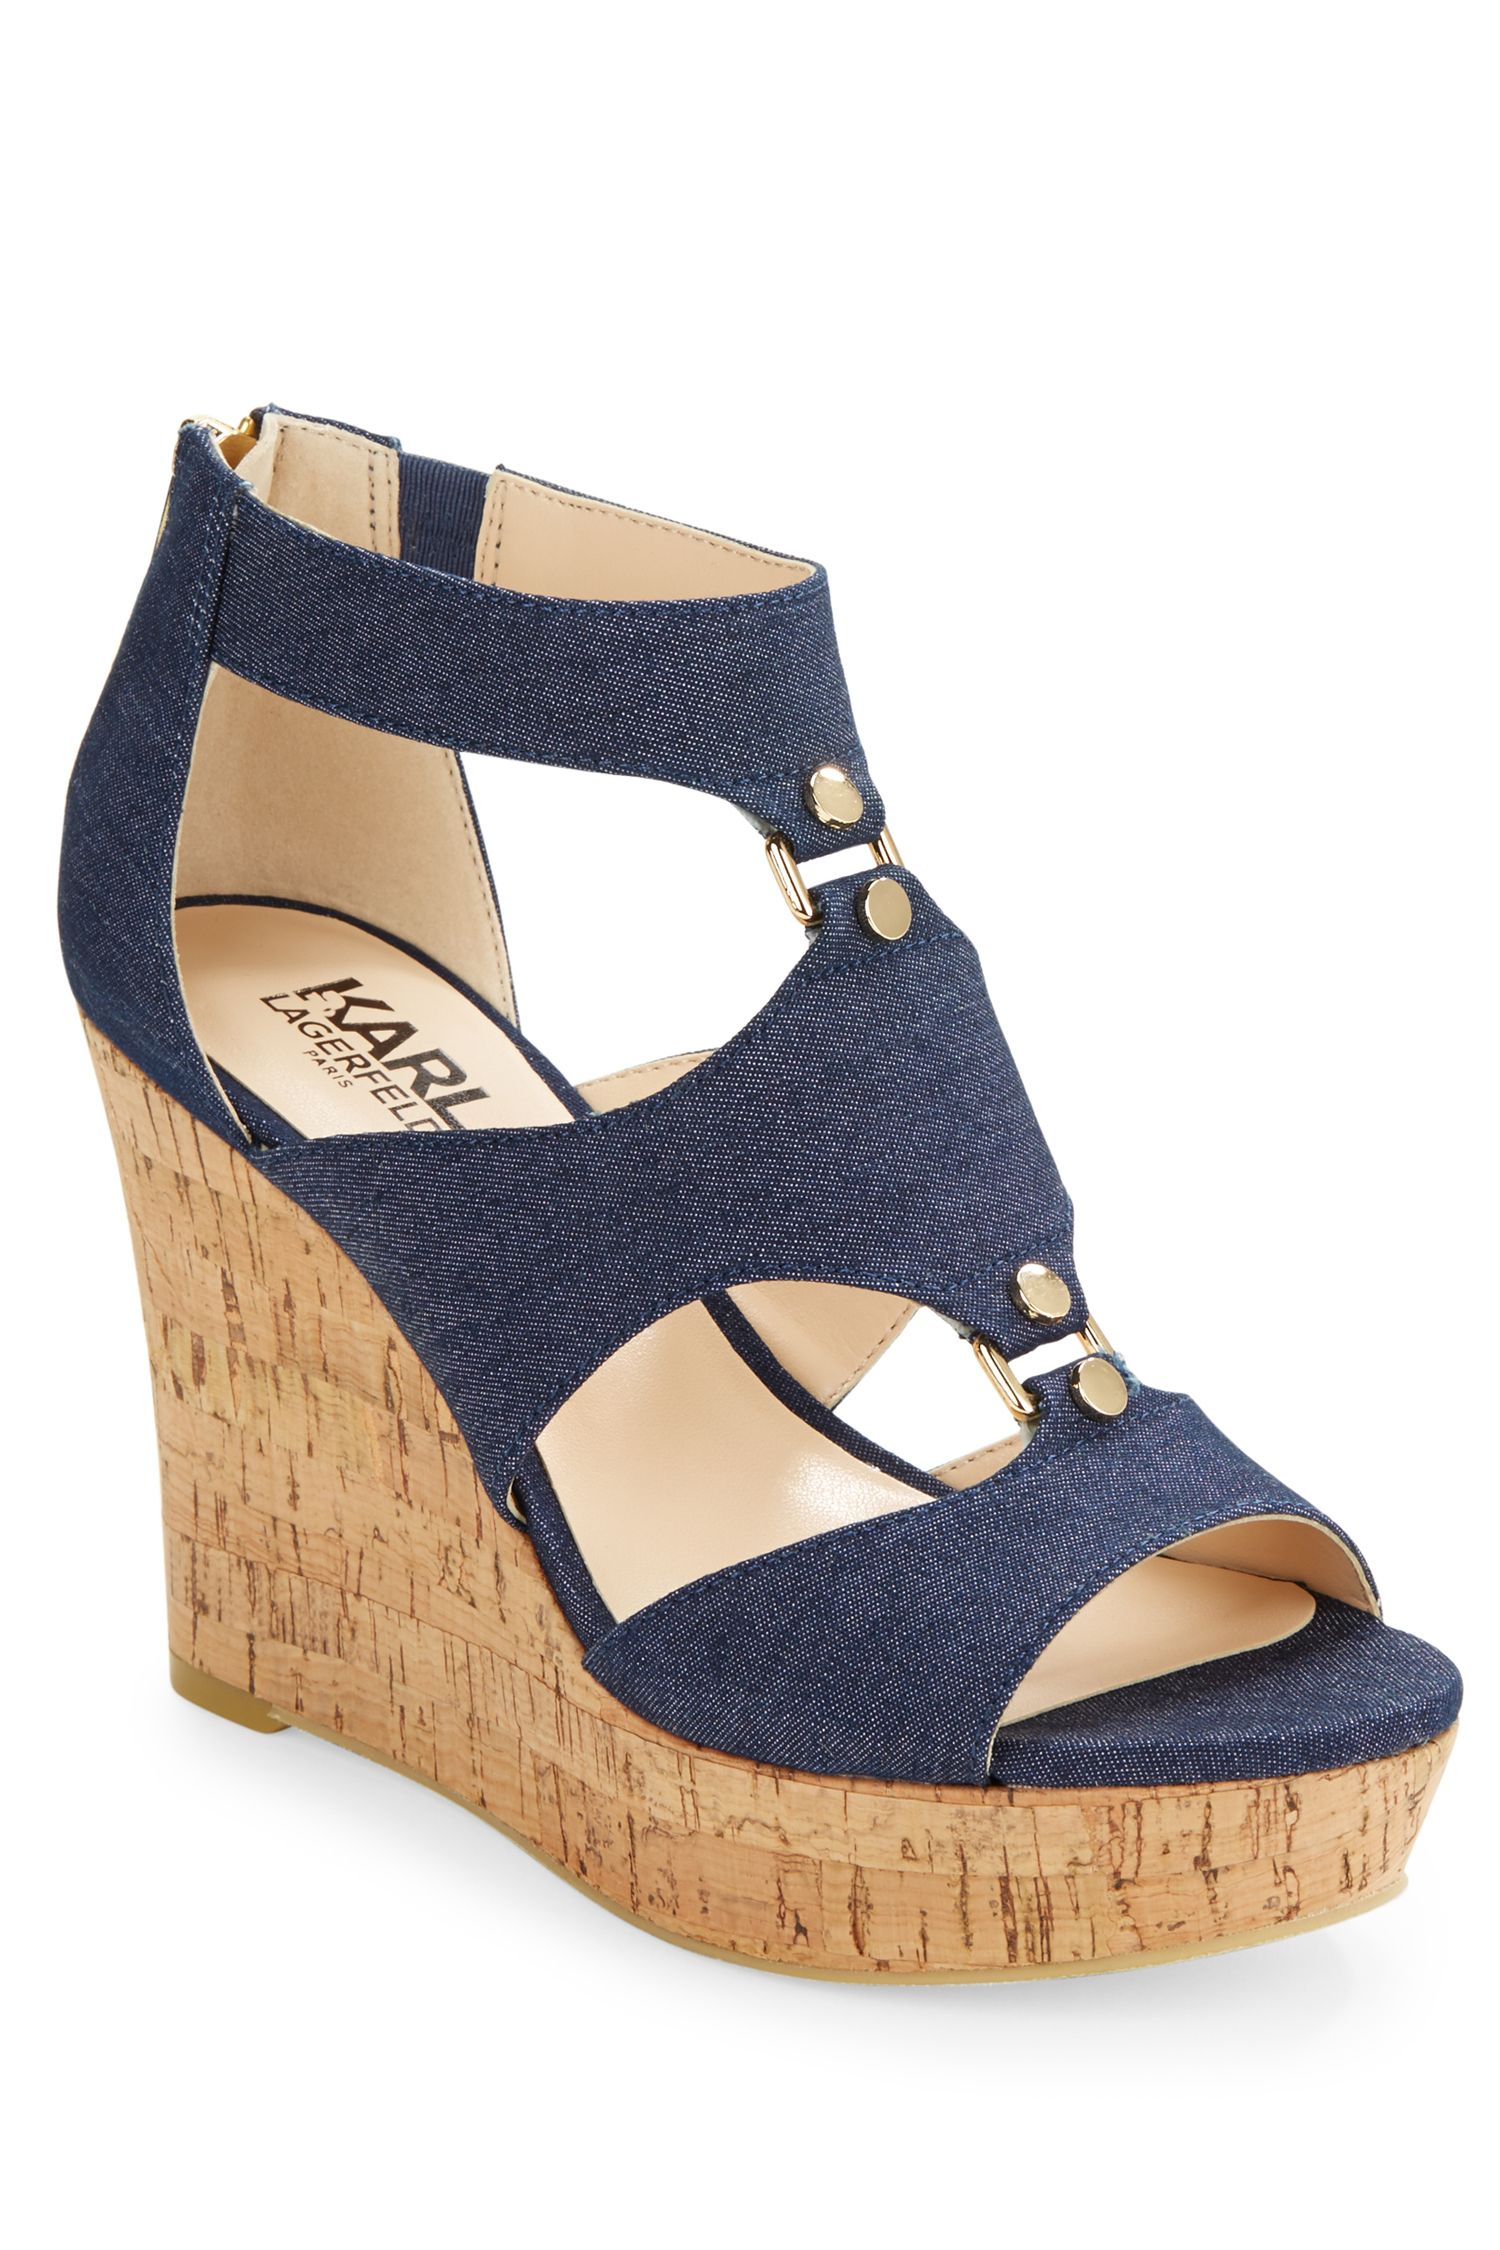 """<p>Neutral wedges make the whole denim shoe trend accessible for easy-breezy wear any day of the week (bonus if they're ultra-comfy). Reach for them with white pants, dresses, and even a pair of velvet shorts.</p><p><em>Karl Lagerfeld Savaoie Platform Wedge Sandals, $109; </em><a href=""""http://www.lordandtaylor.com/webapp/wcs/stores/servlet/en/lord-and-taylor/savoie-platform-wedge-sandals"""" target=""""_blank""""><em>lordandtaylor.com</em></a></p>"""